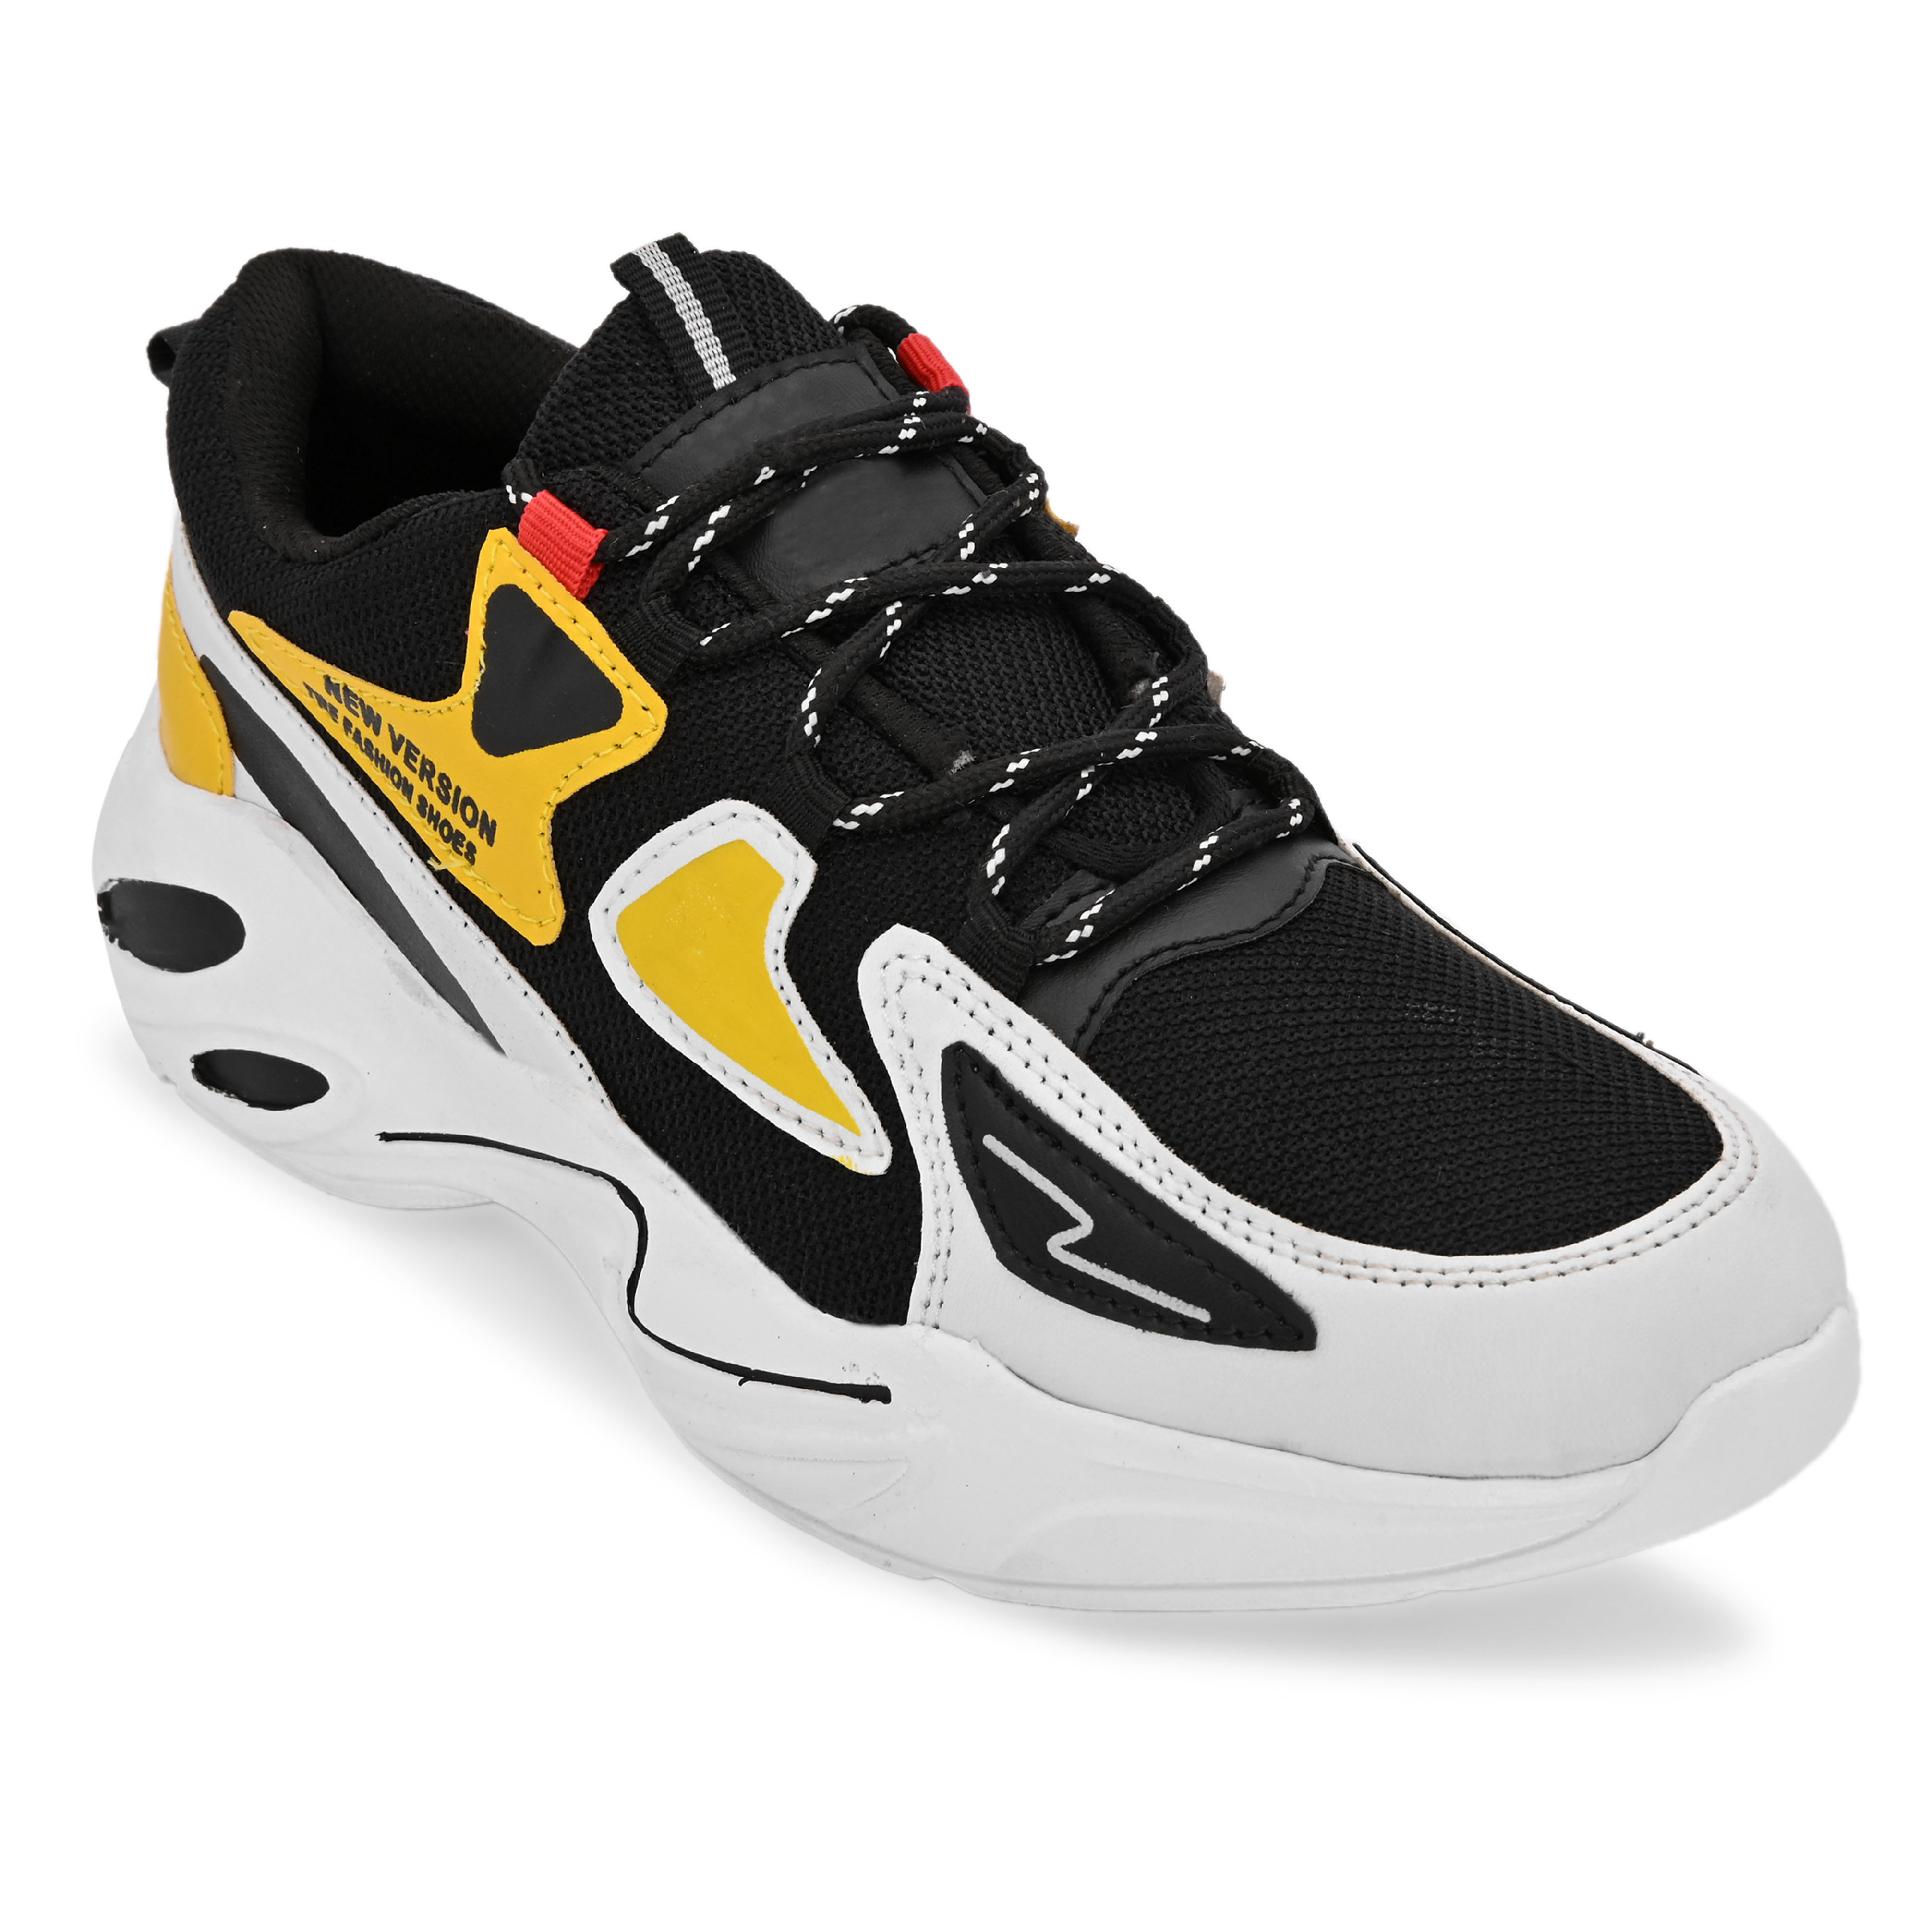 BRIFAR COMFORTABLE & TRENDY SPORTS SHOES ARE RELIABLE FOR ANY BFS0813YL1 (7-10, YELLOW, 4 PAIR)